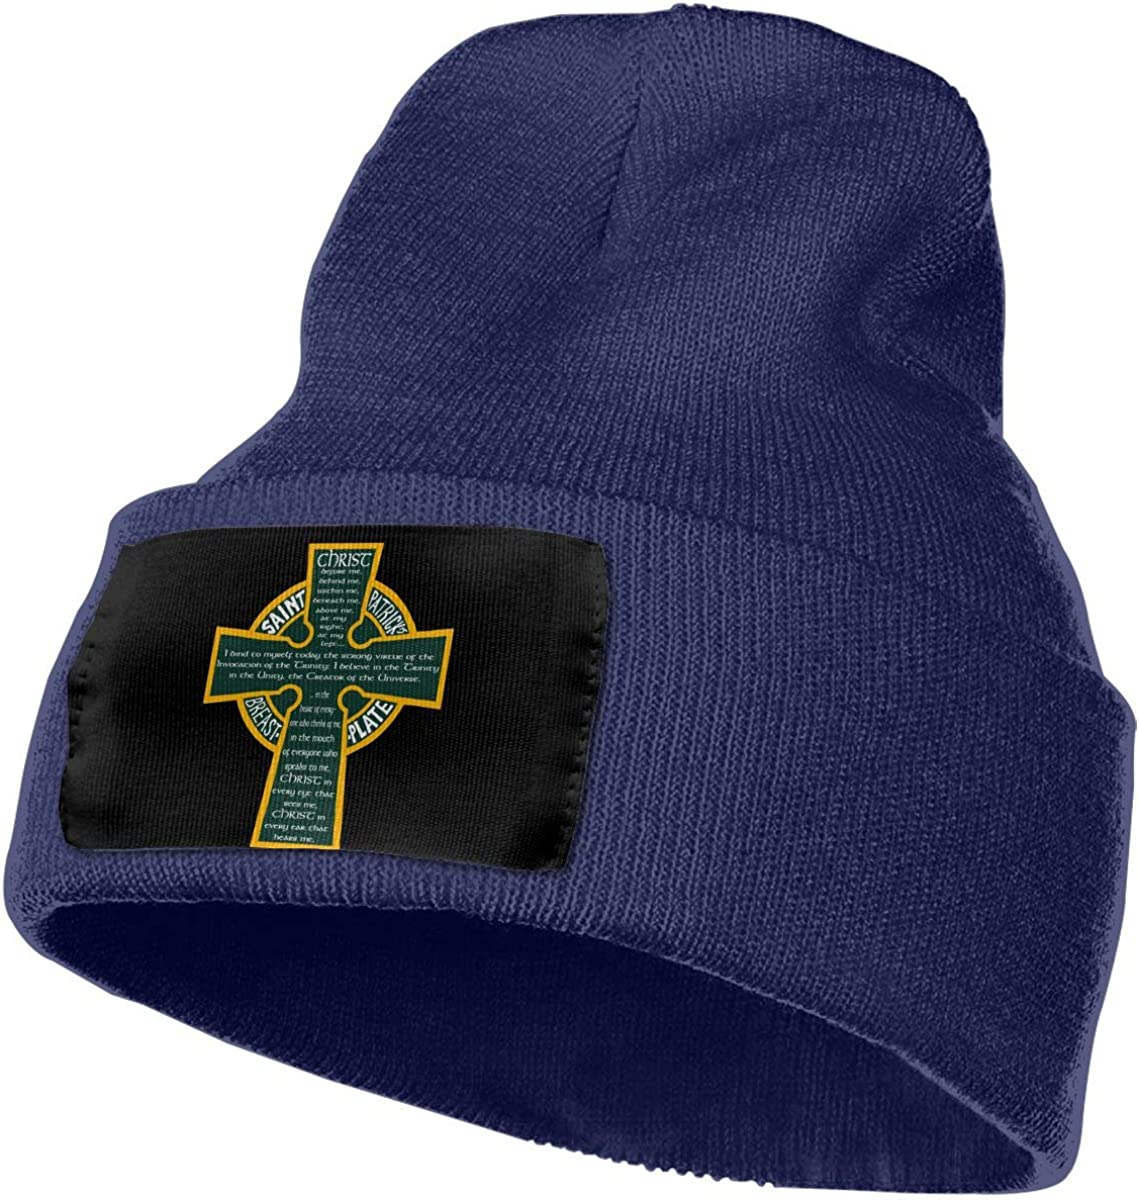 St Patricks Breastplate Or Wh Unisex Fashion Knitted Hat Luxury Hip-Hop Cap